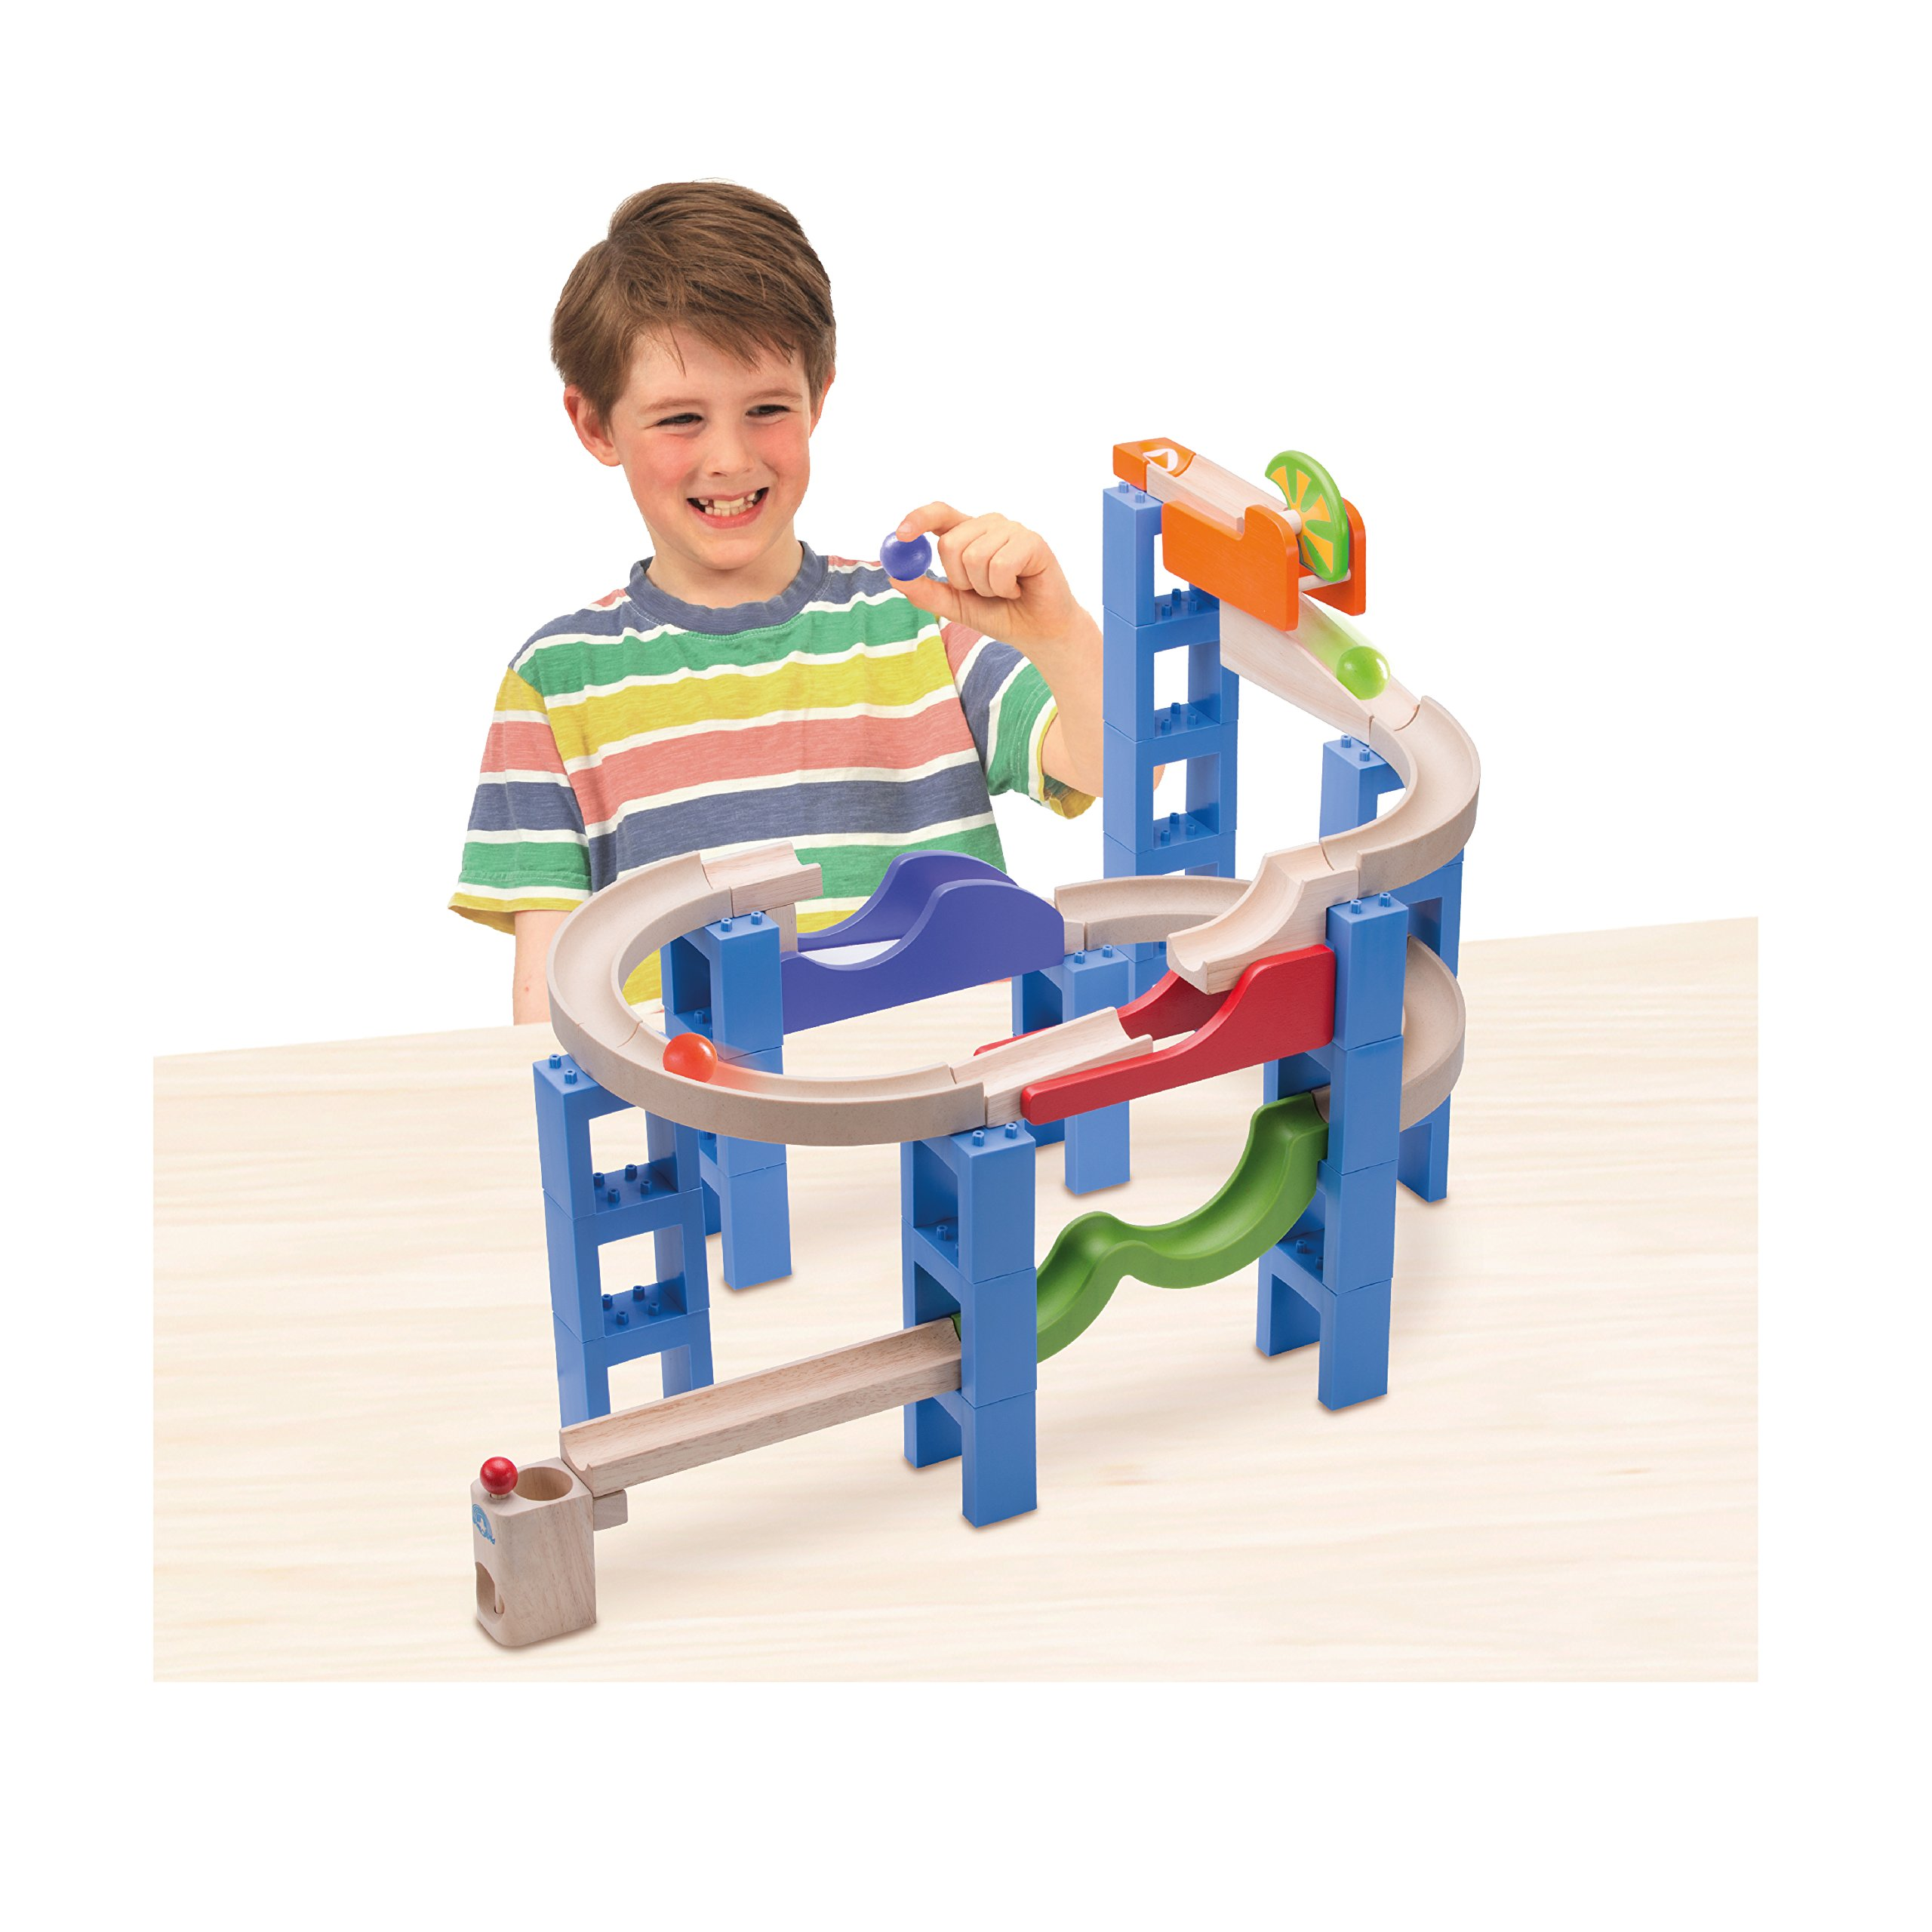 Wonderworld Creative Gravity Play! Trix Tracks Bouncing Spiral Track - 36 Piece Set Unique Kids Toy with Endless Building Options